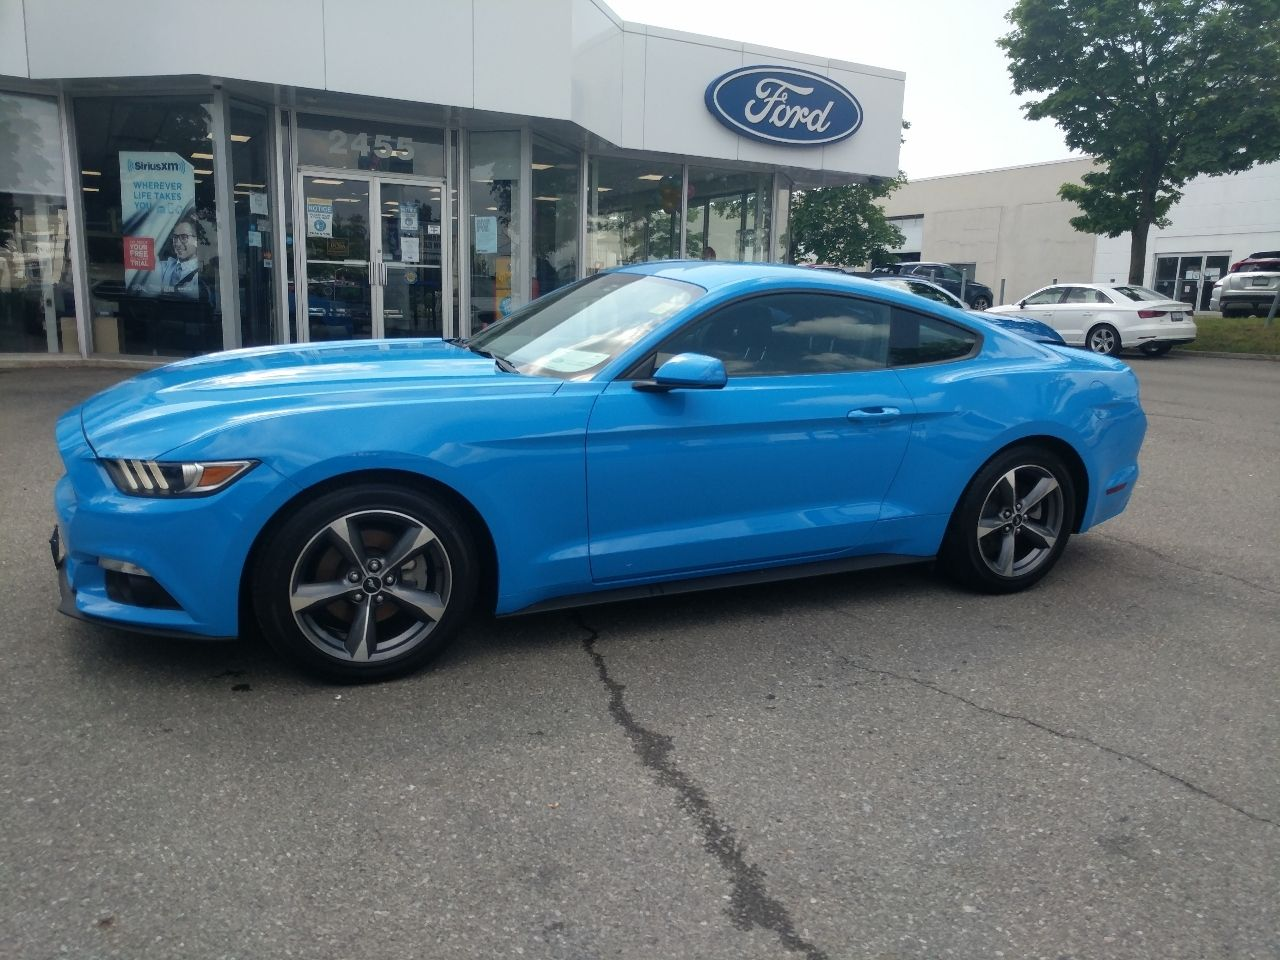 2017 Ford Mustang Image